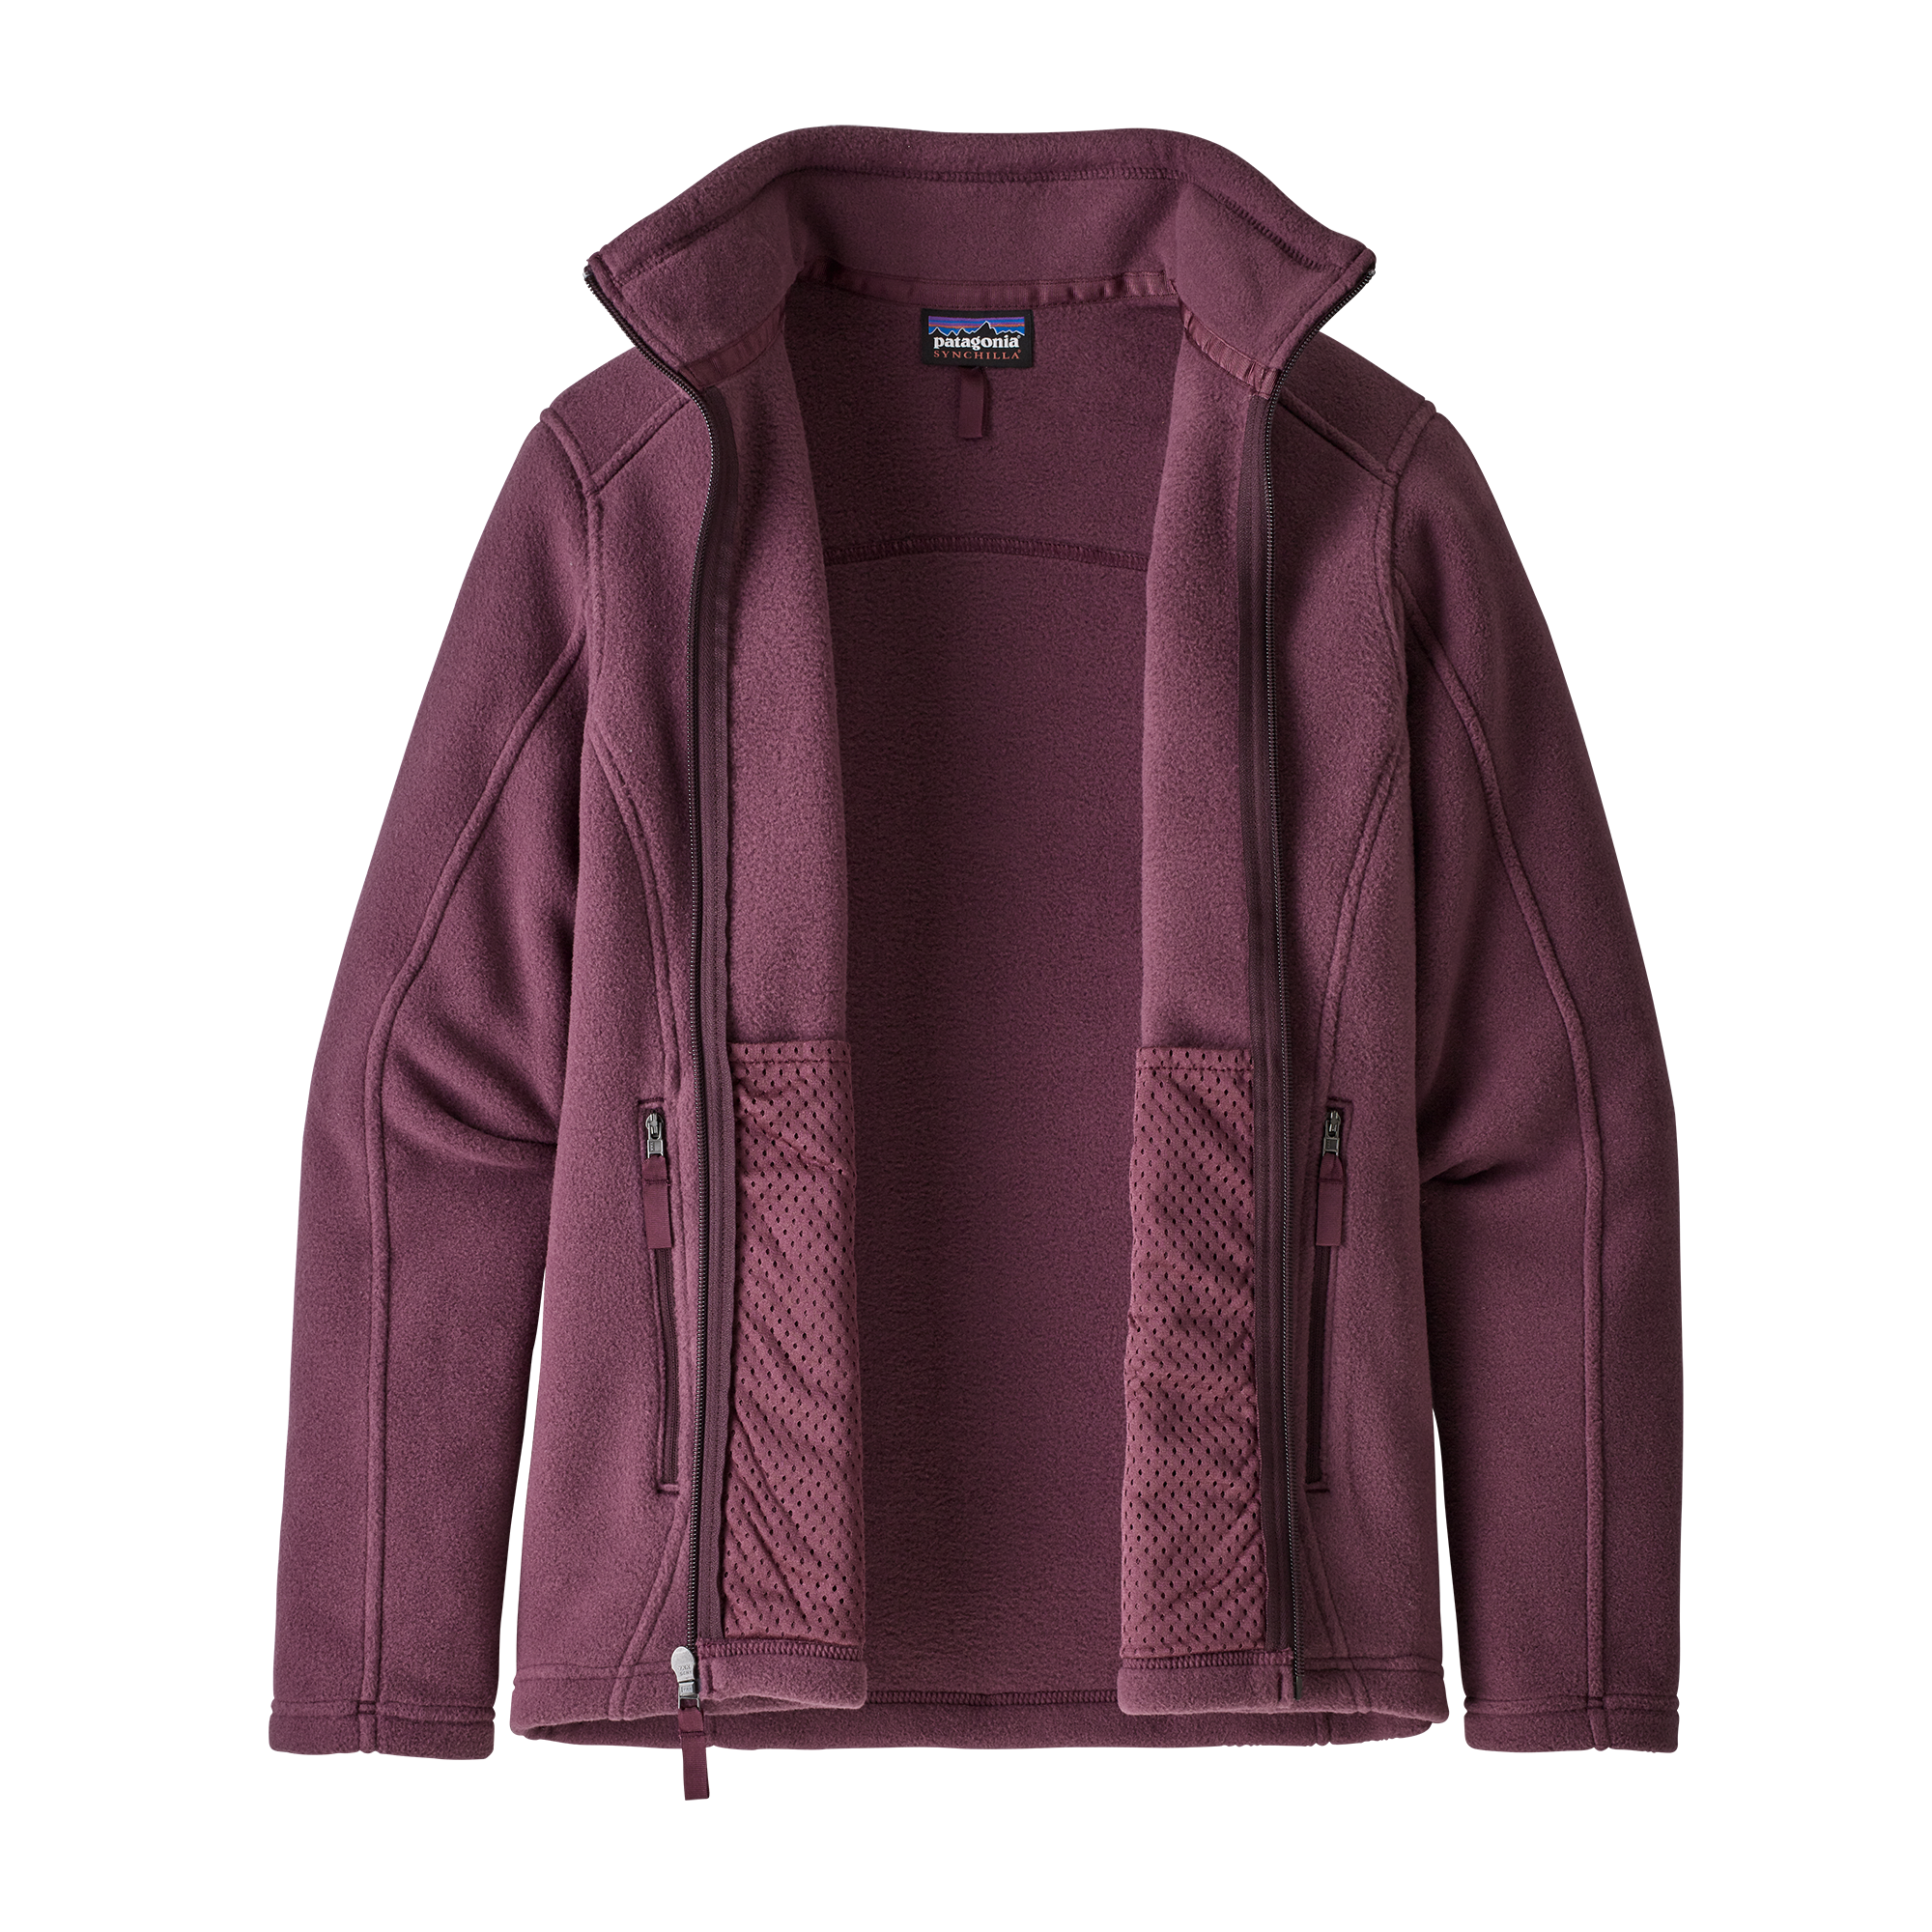 aefd88086a6b https://www.patagonia.com/product/field-shorts/11193.html 2019-08 ...